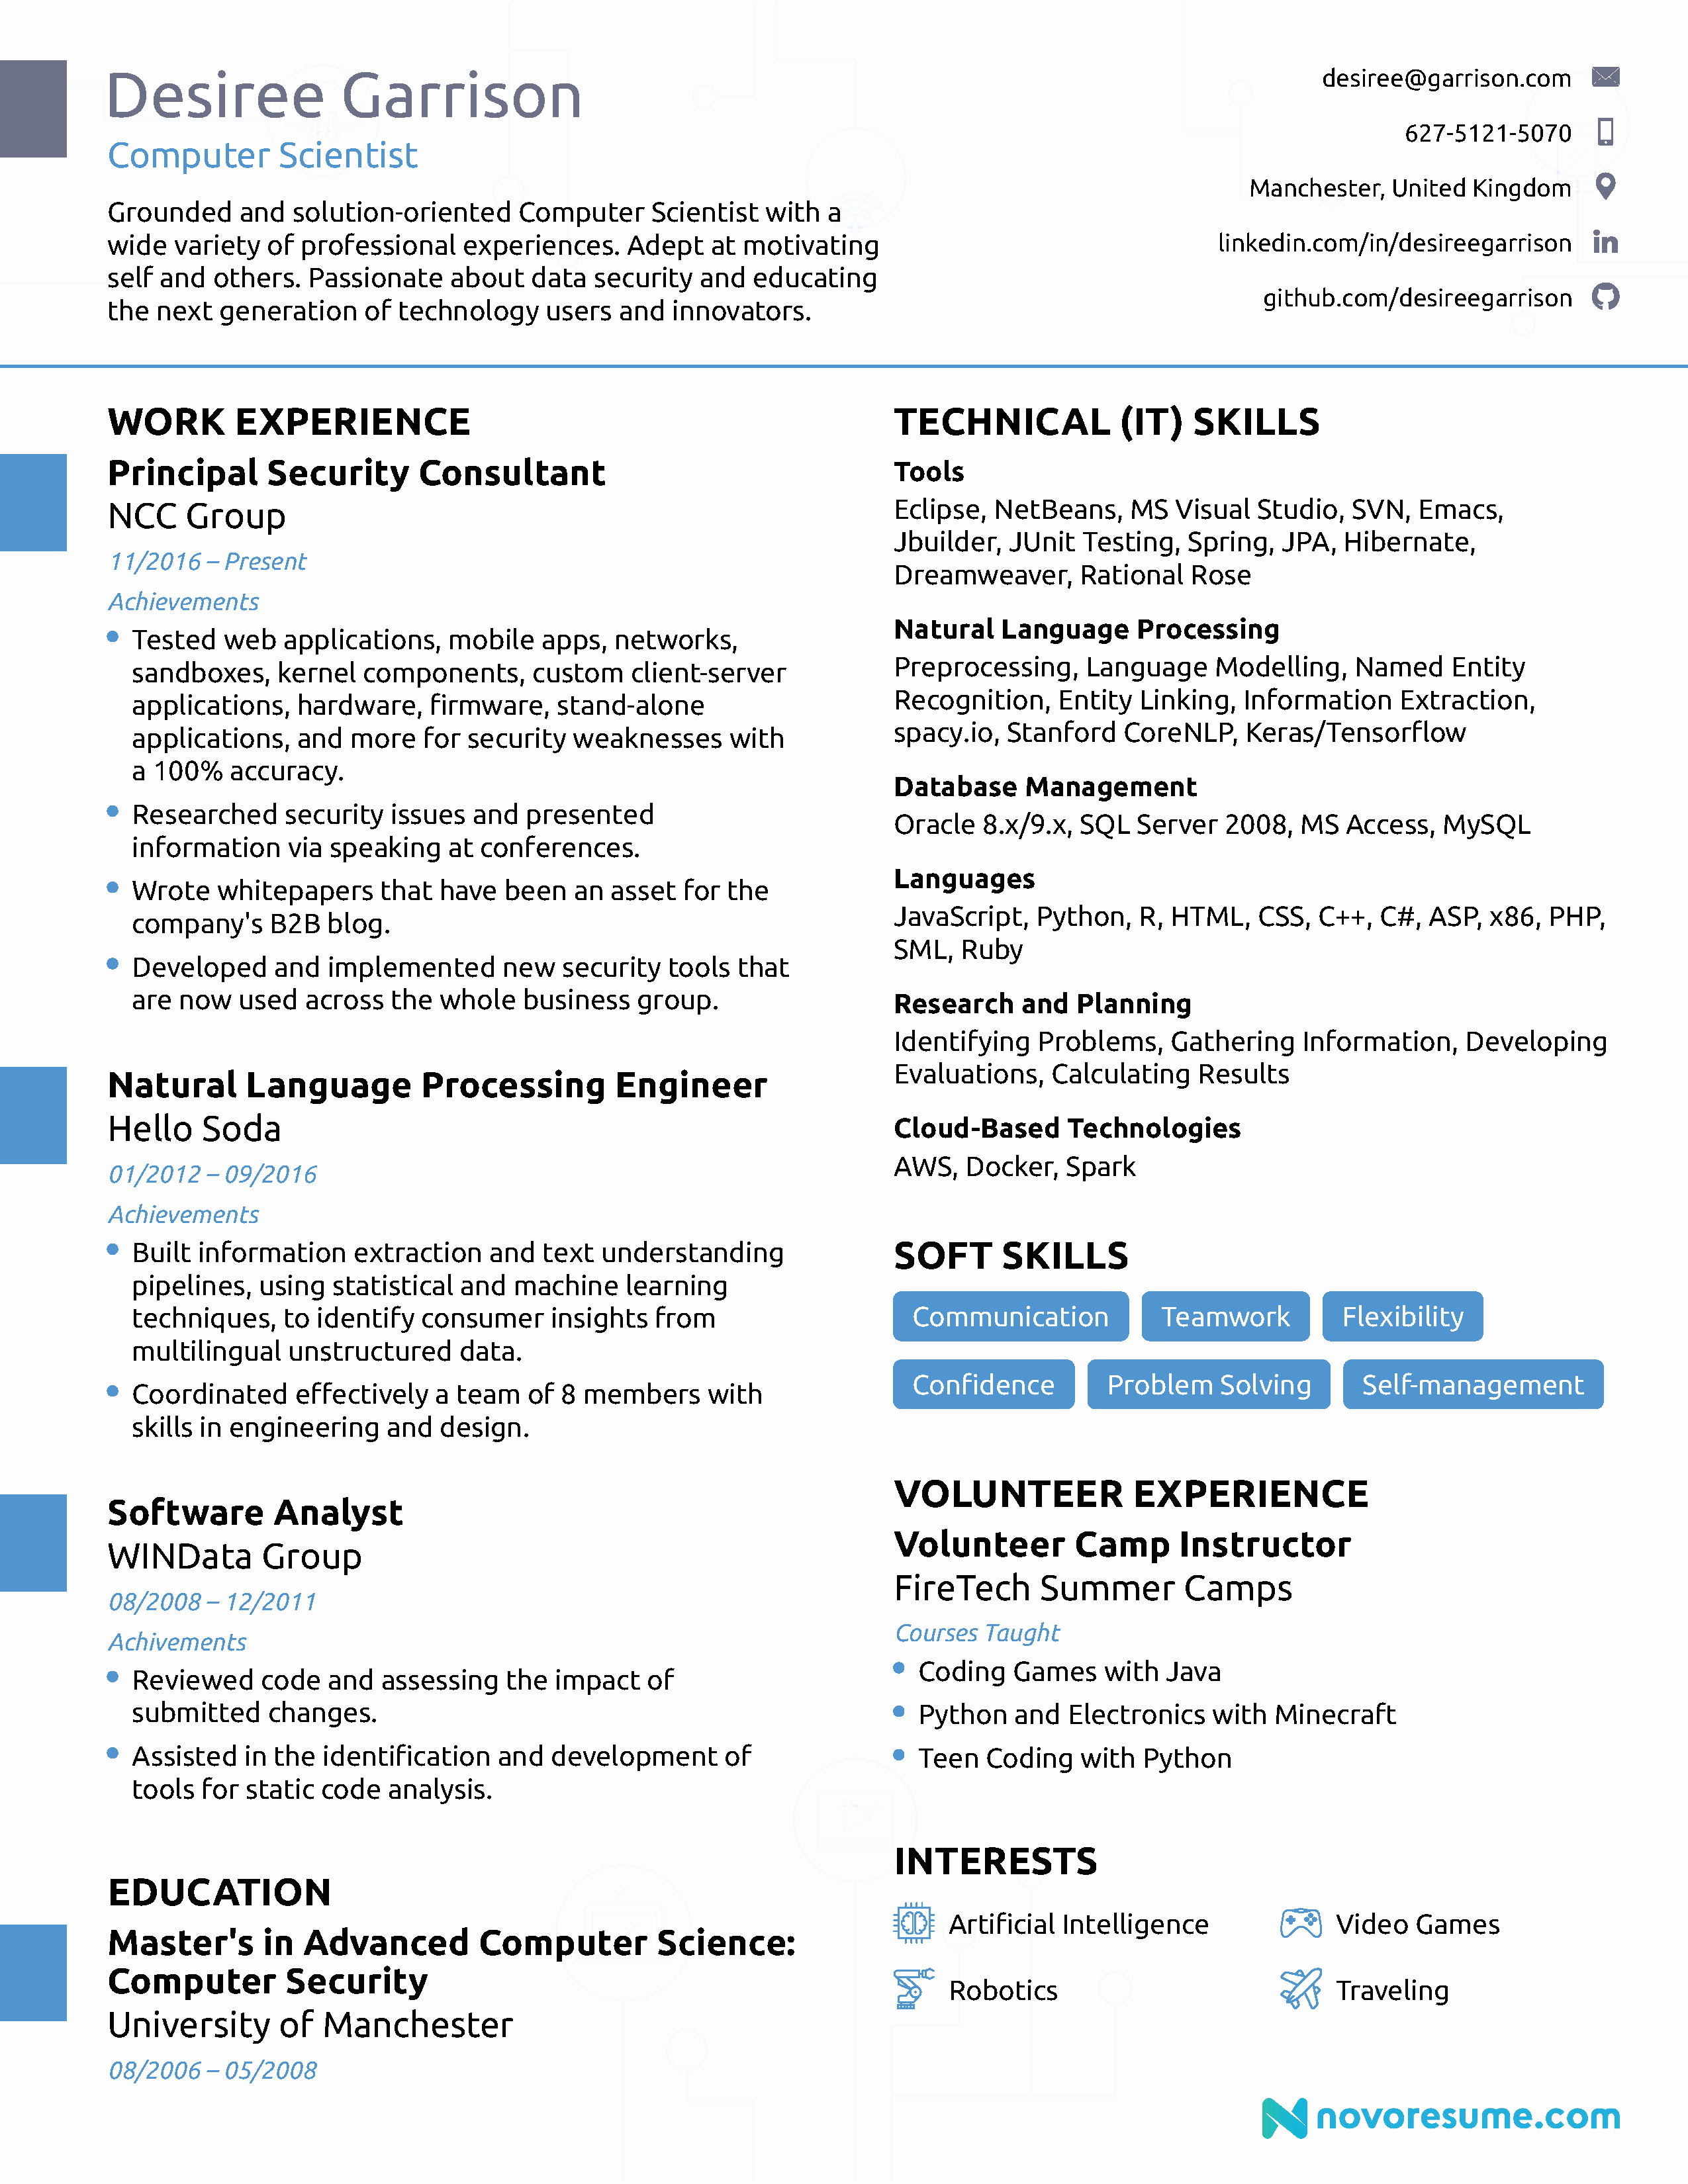 Sample Computer Science Resume Awesome Puter Science Resume [2019] Guide & Examples